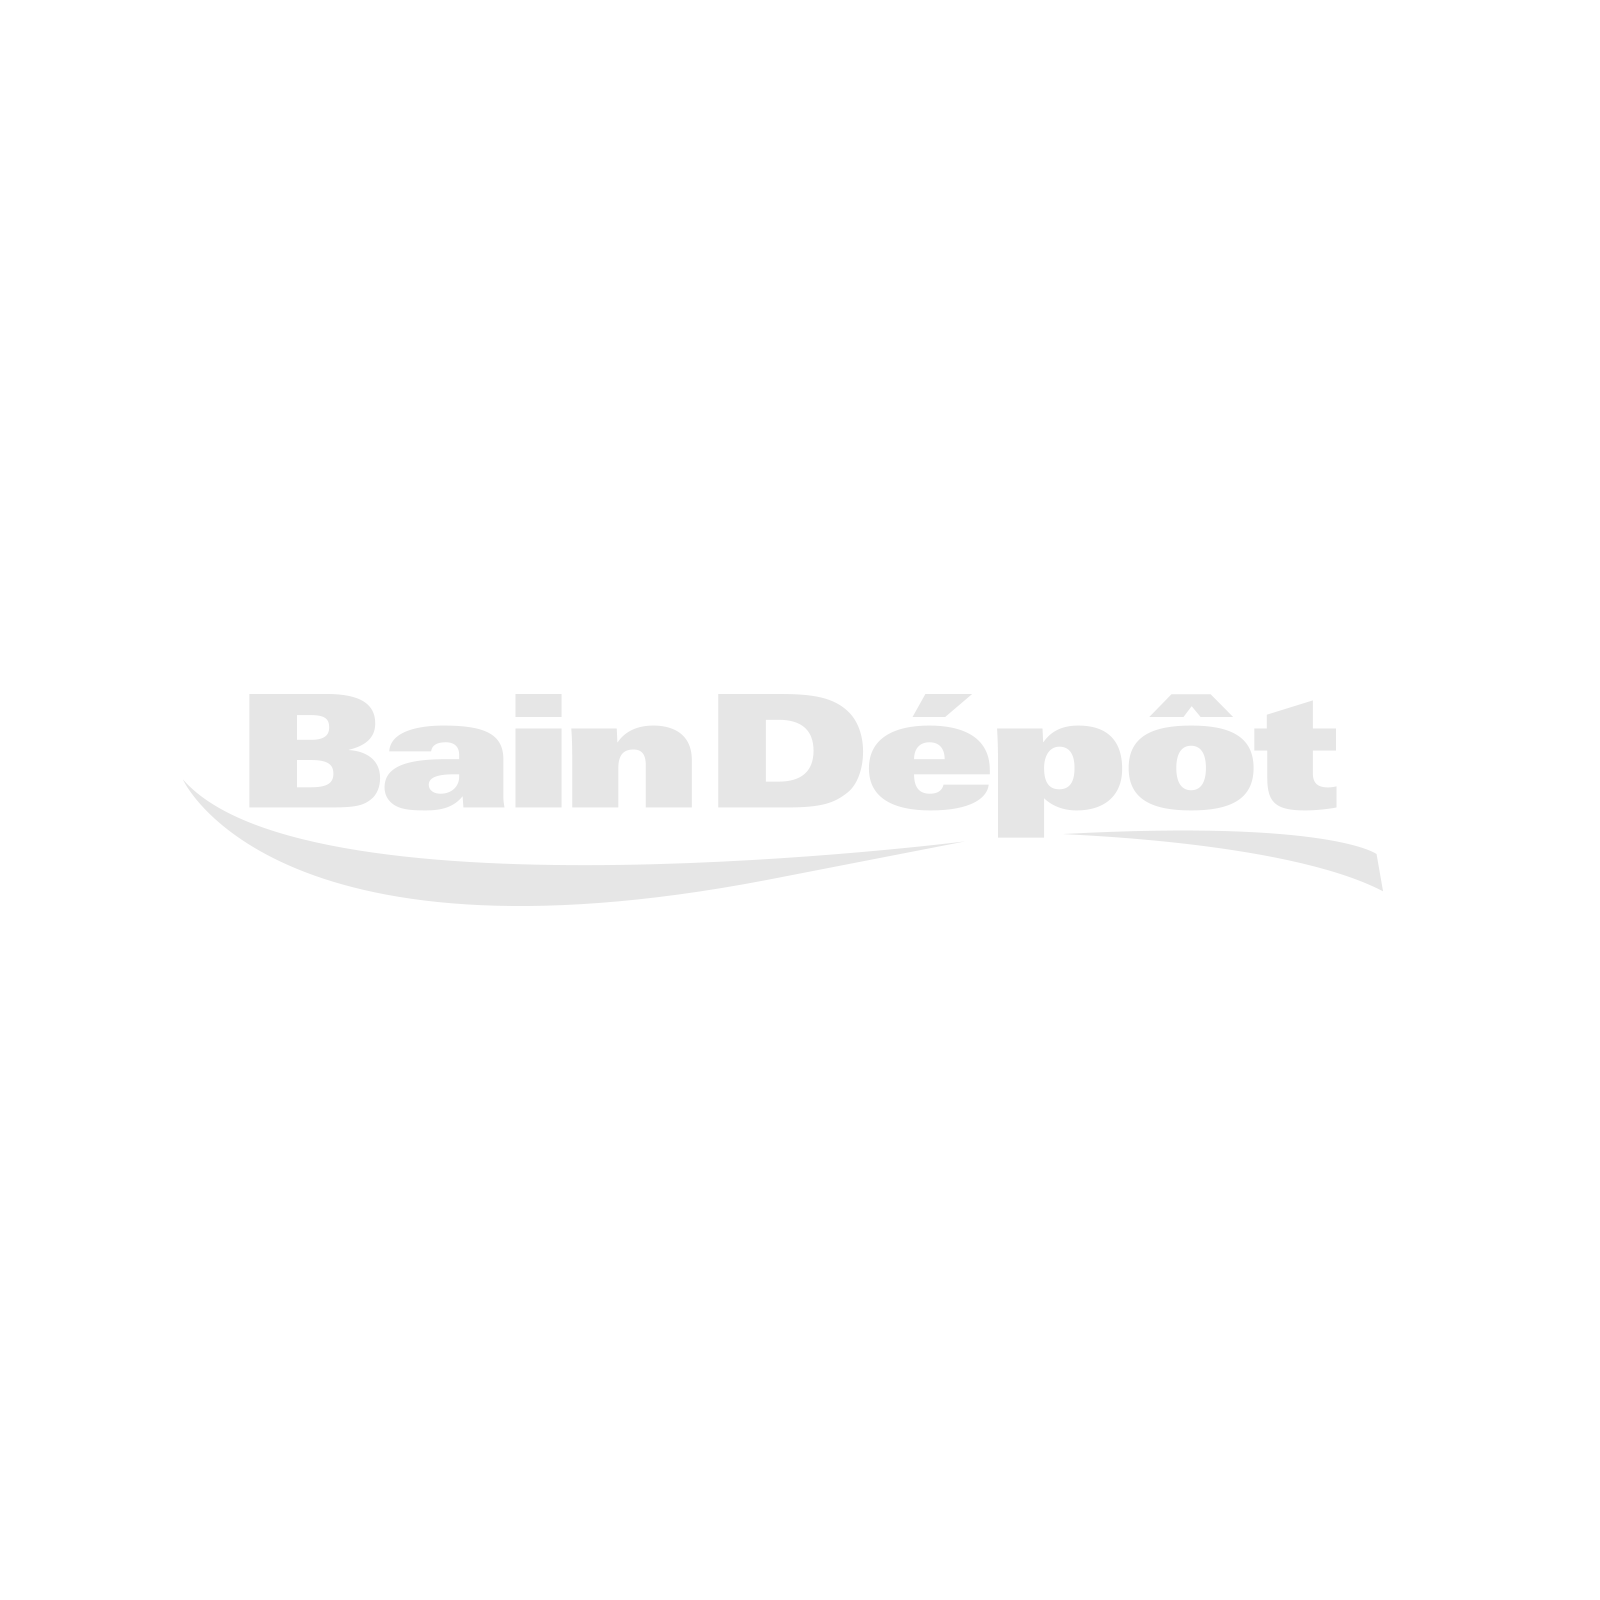 "DUO SERENA 71"" freestanding bathtub with chrome freestanding faucet"